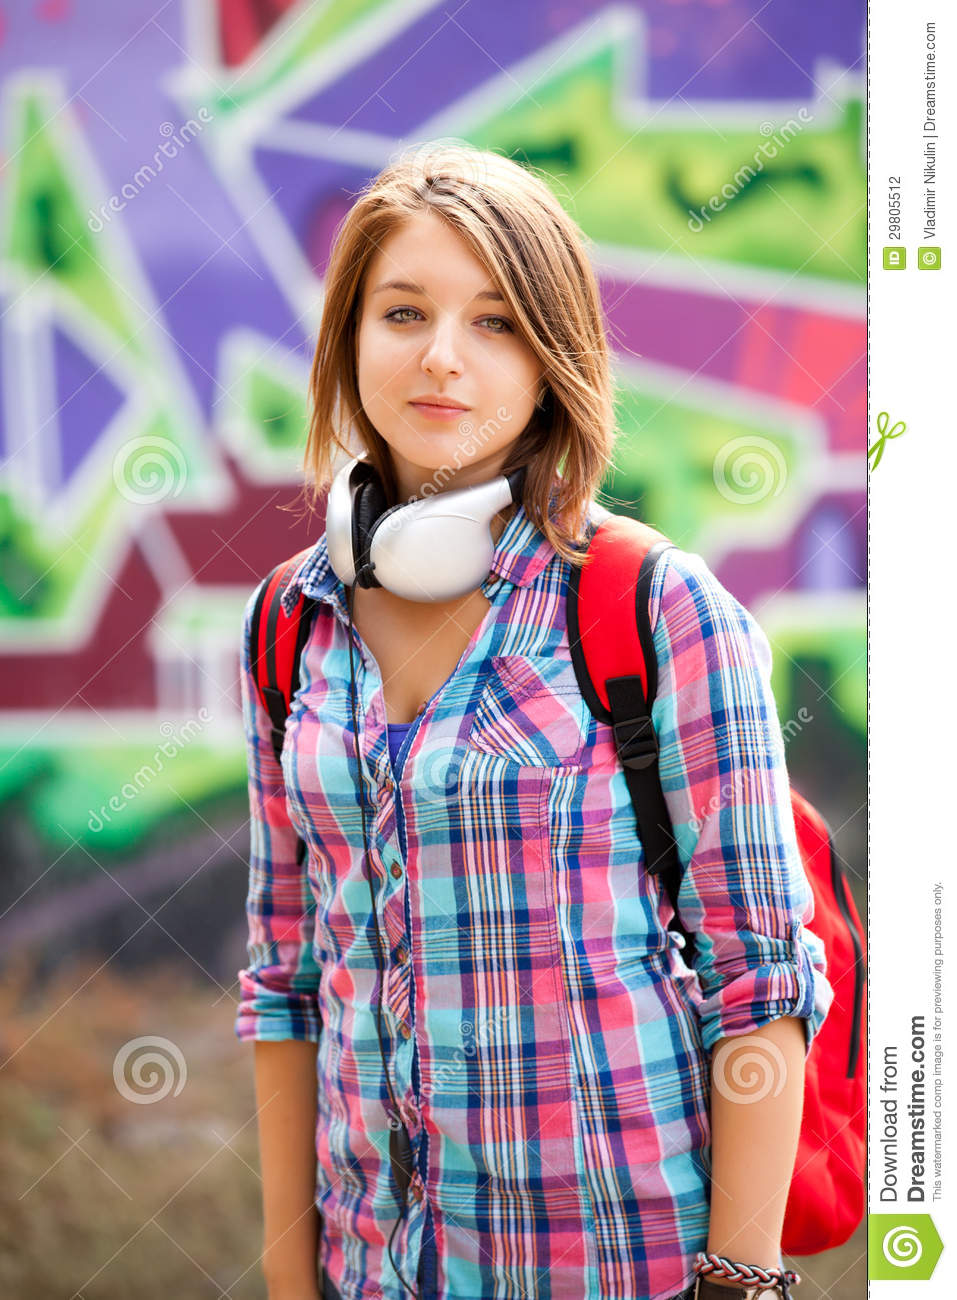 Http Www Dreamstime Com Stock Photography Style Teen Girl Backpack Standing Near Graffiti Wall Image29805512